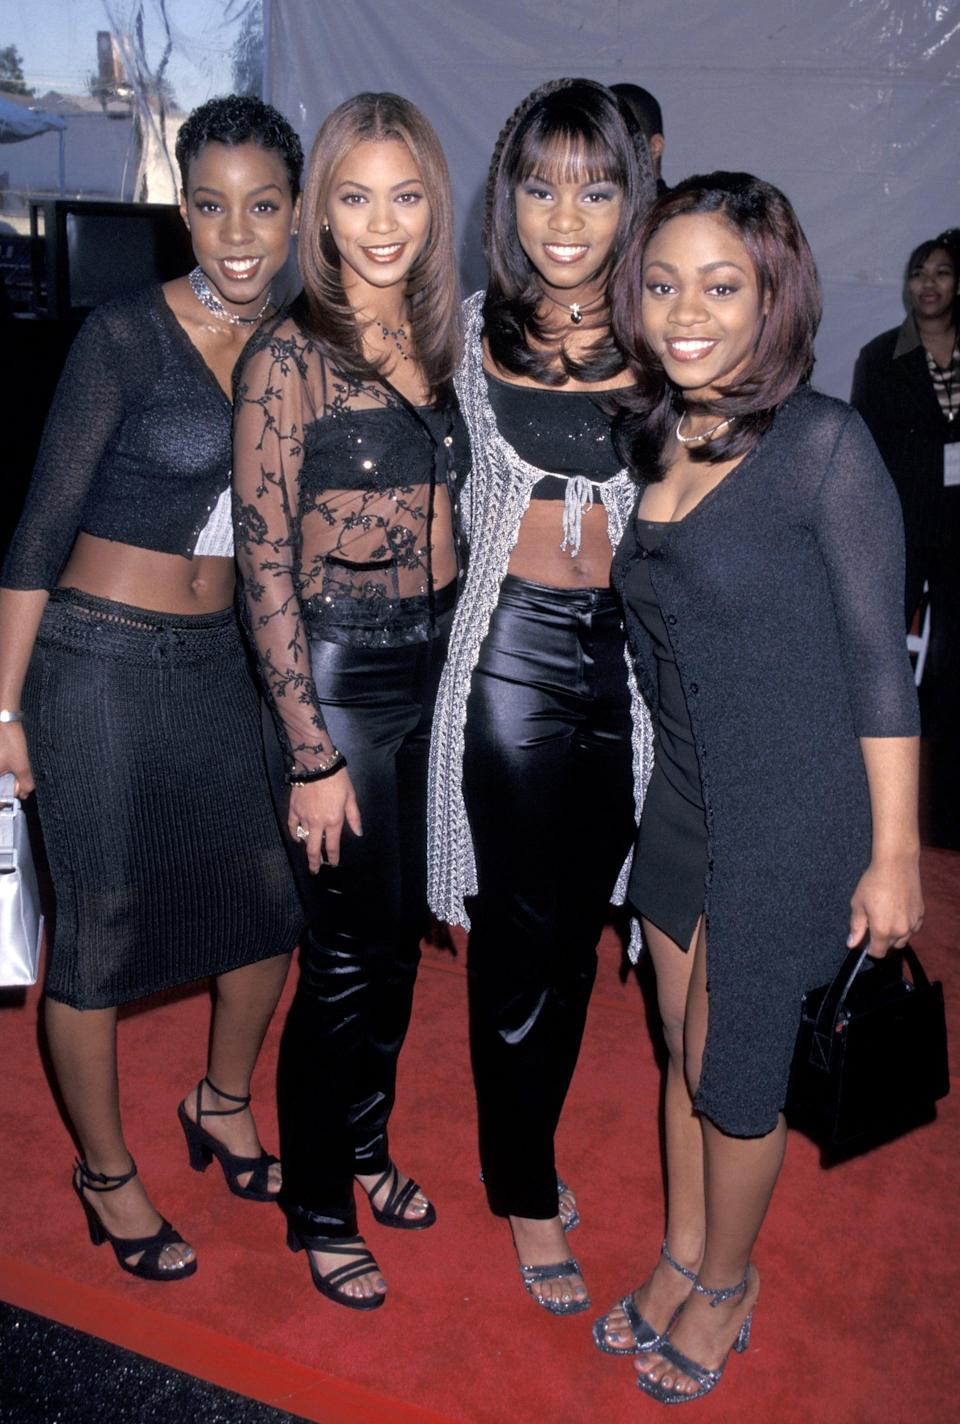 <p>Wearing matching black outfits at the 1998 Soul Train Music Awards.</p>